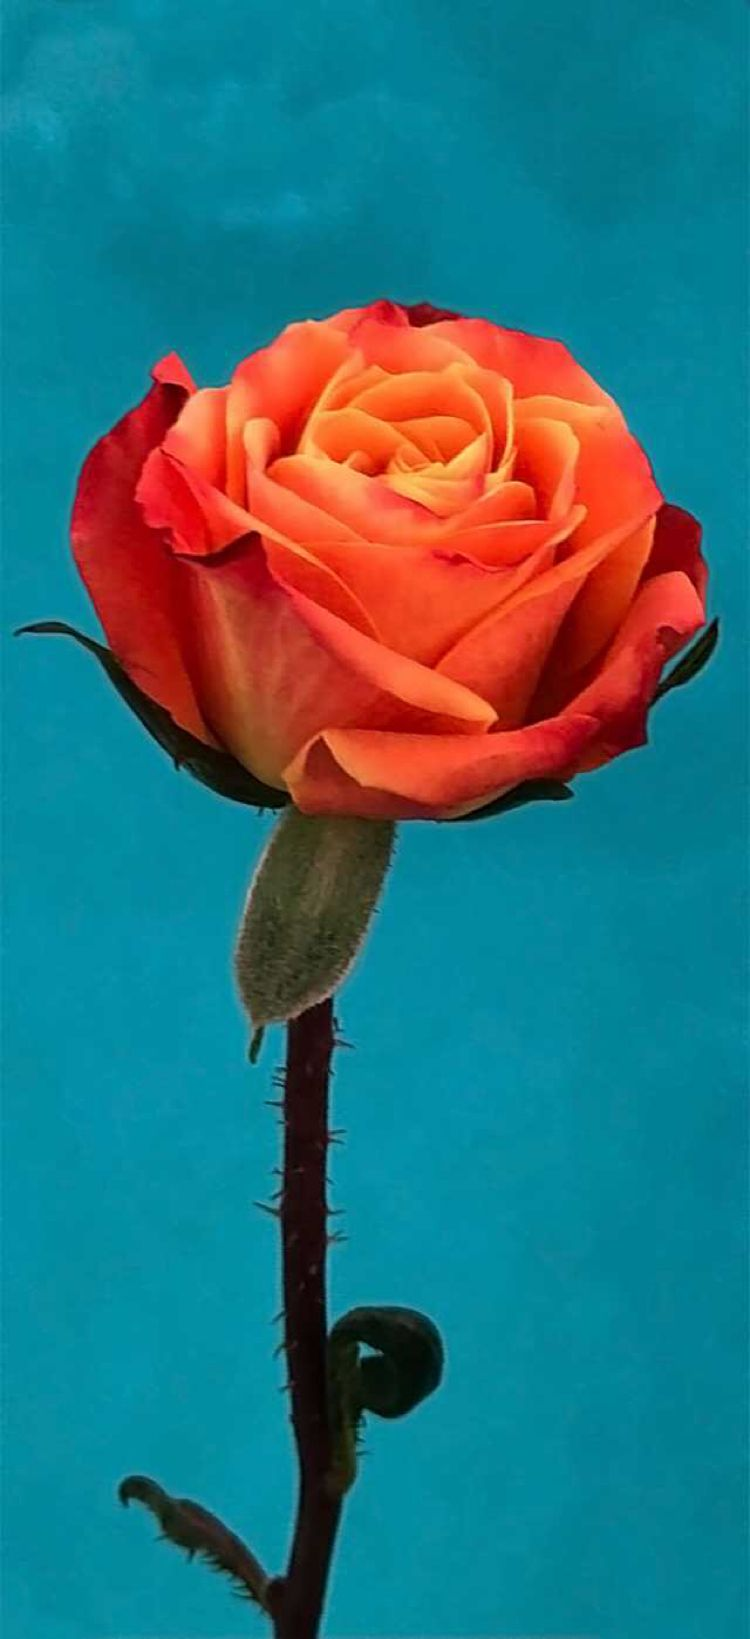 Ios 11 Orange Rose Flower Turquoise Abstract Apple Wallpaper Iphone X Iphone 8 Clean Beauty Col Samsung Wallpaper Ios 11 Wallpaper Iphone Wallpaper